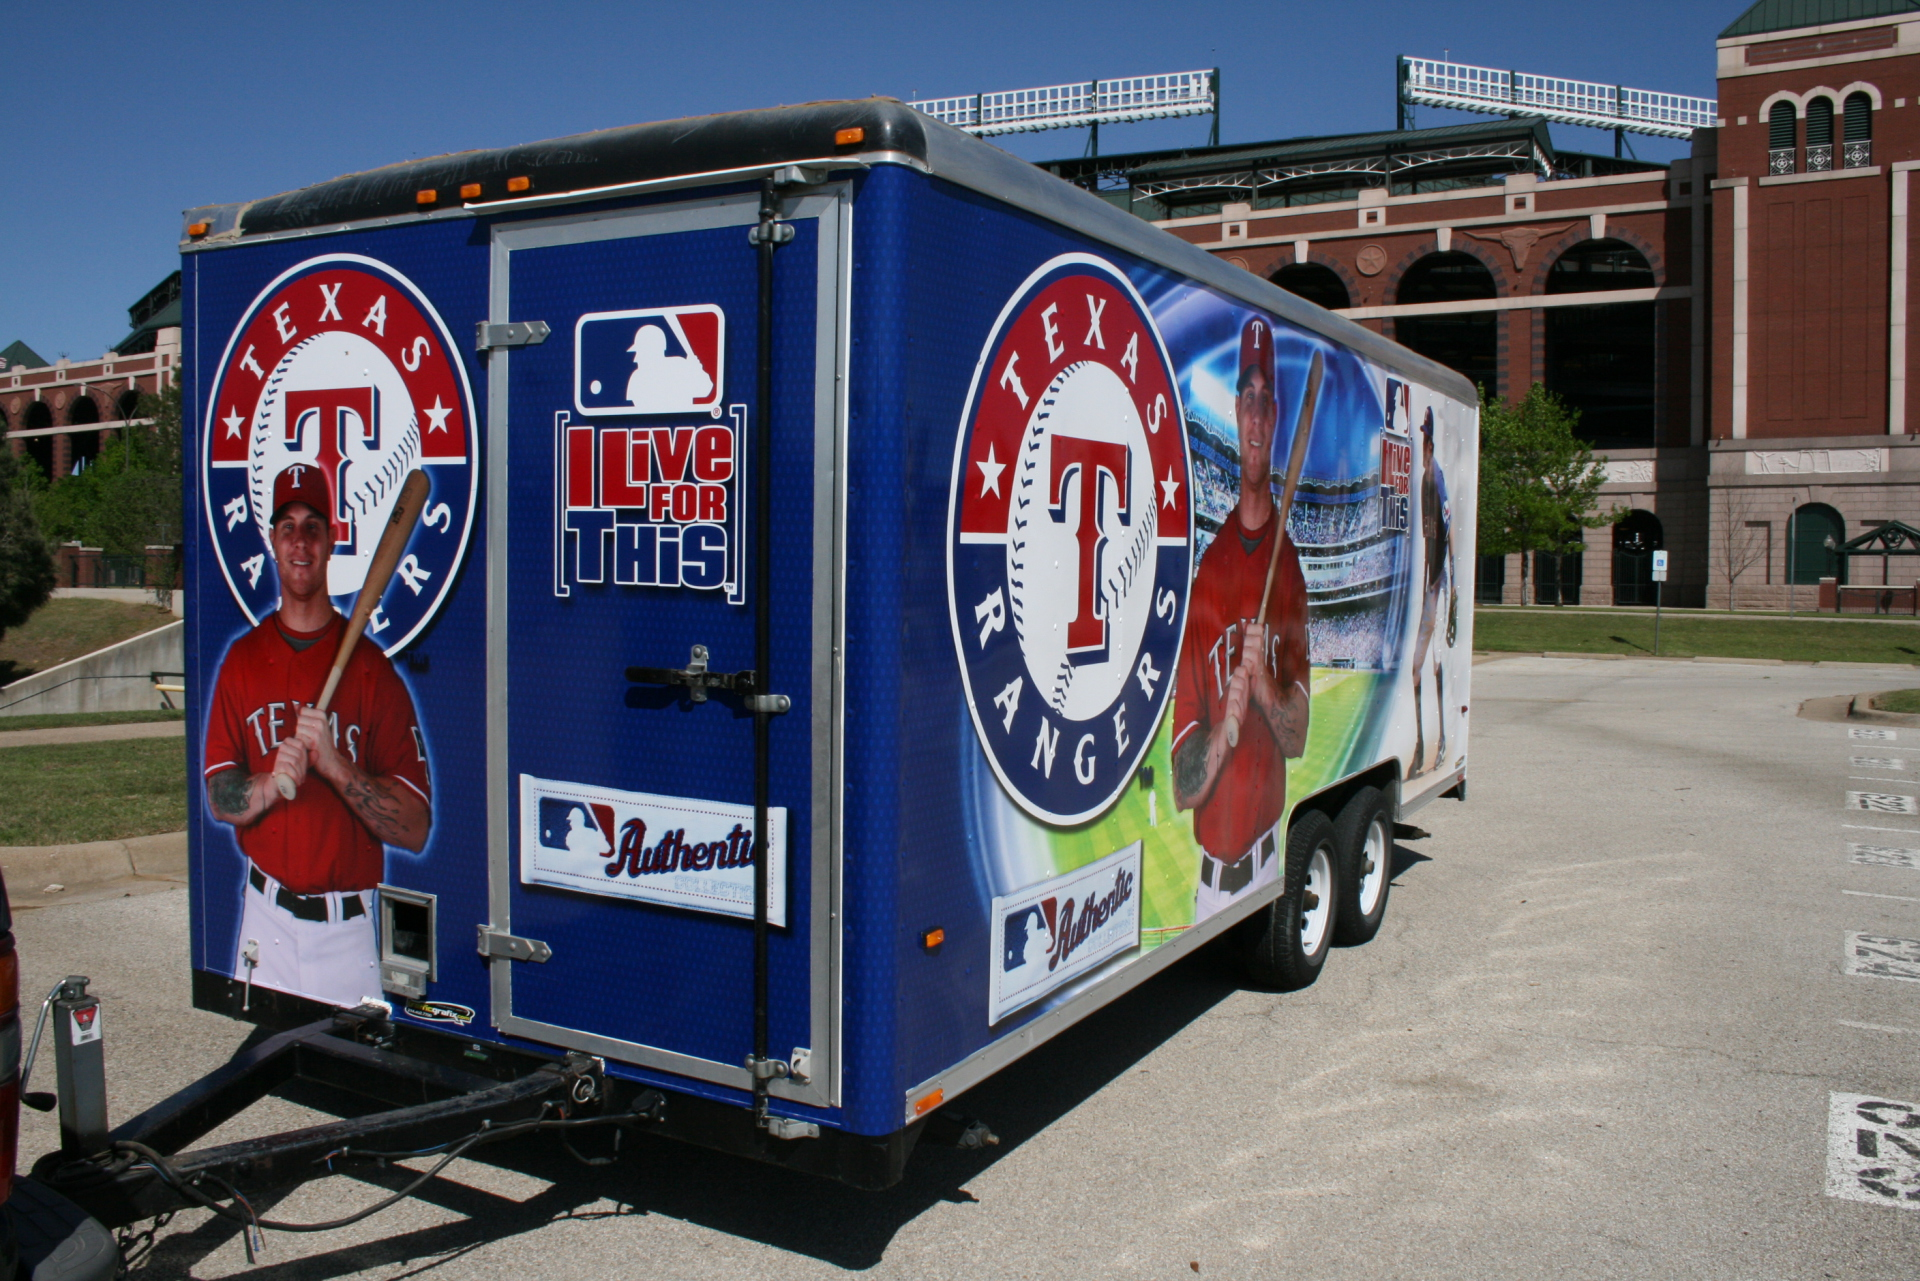 Texas Ranger Trailer wrap, trailer wrap arlington texas, texas trailer wraps